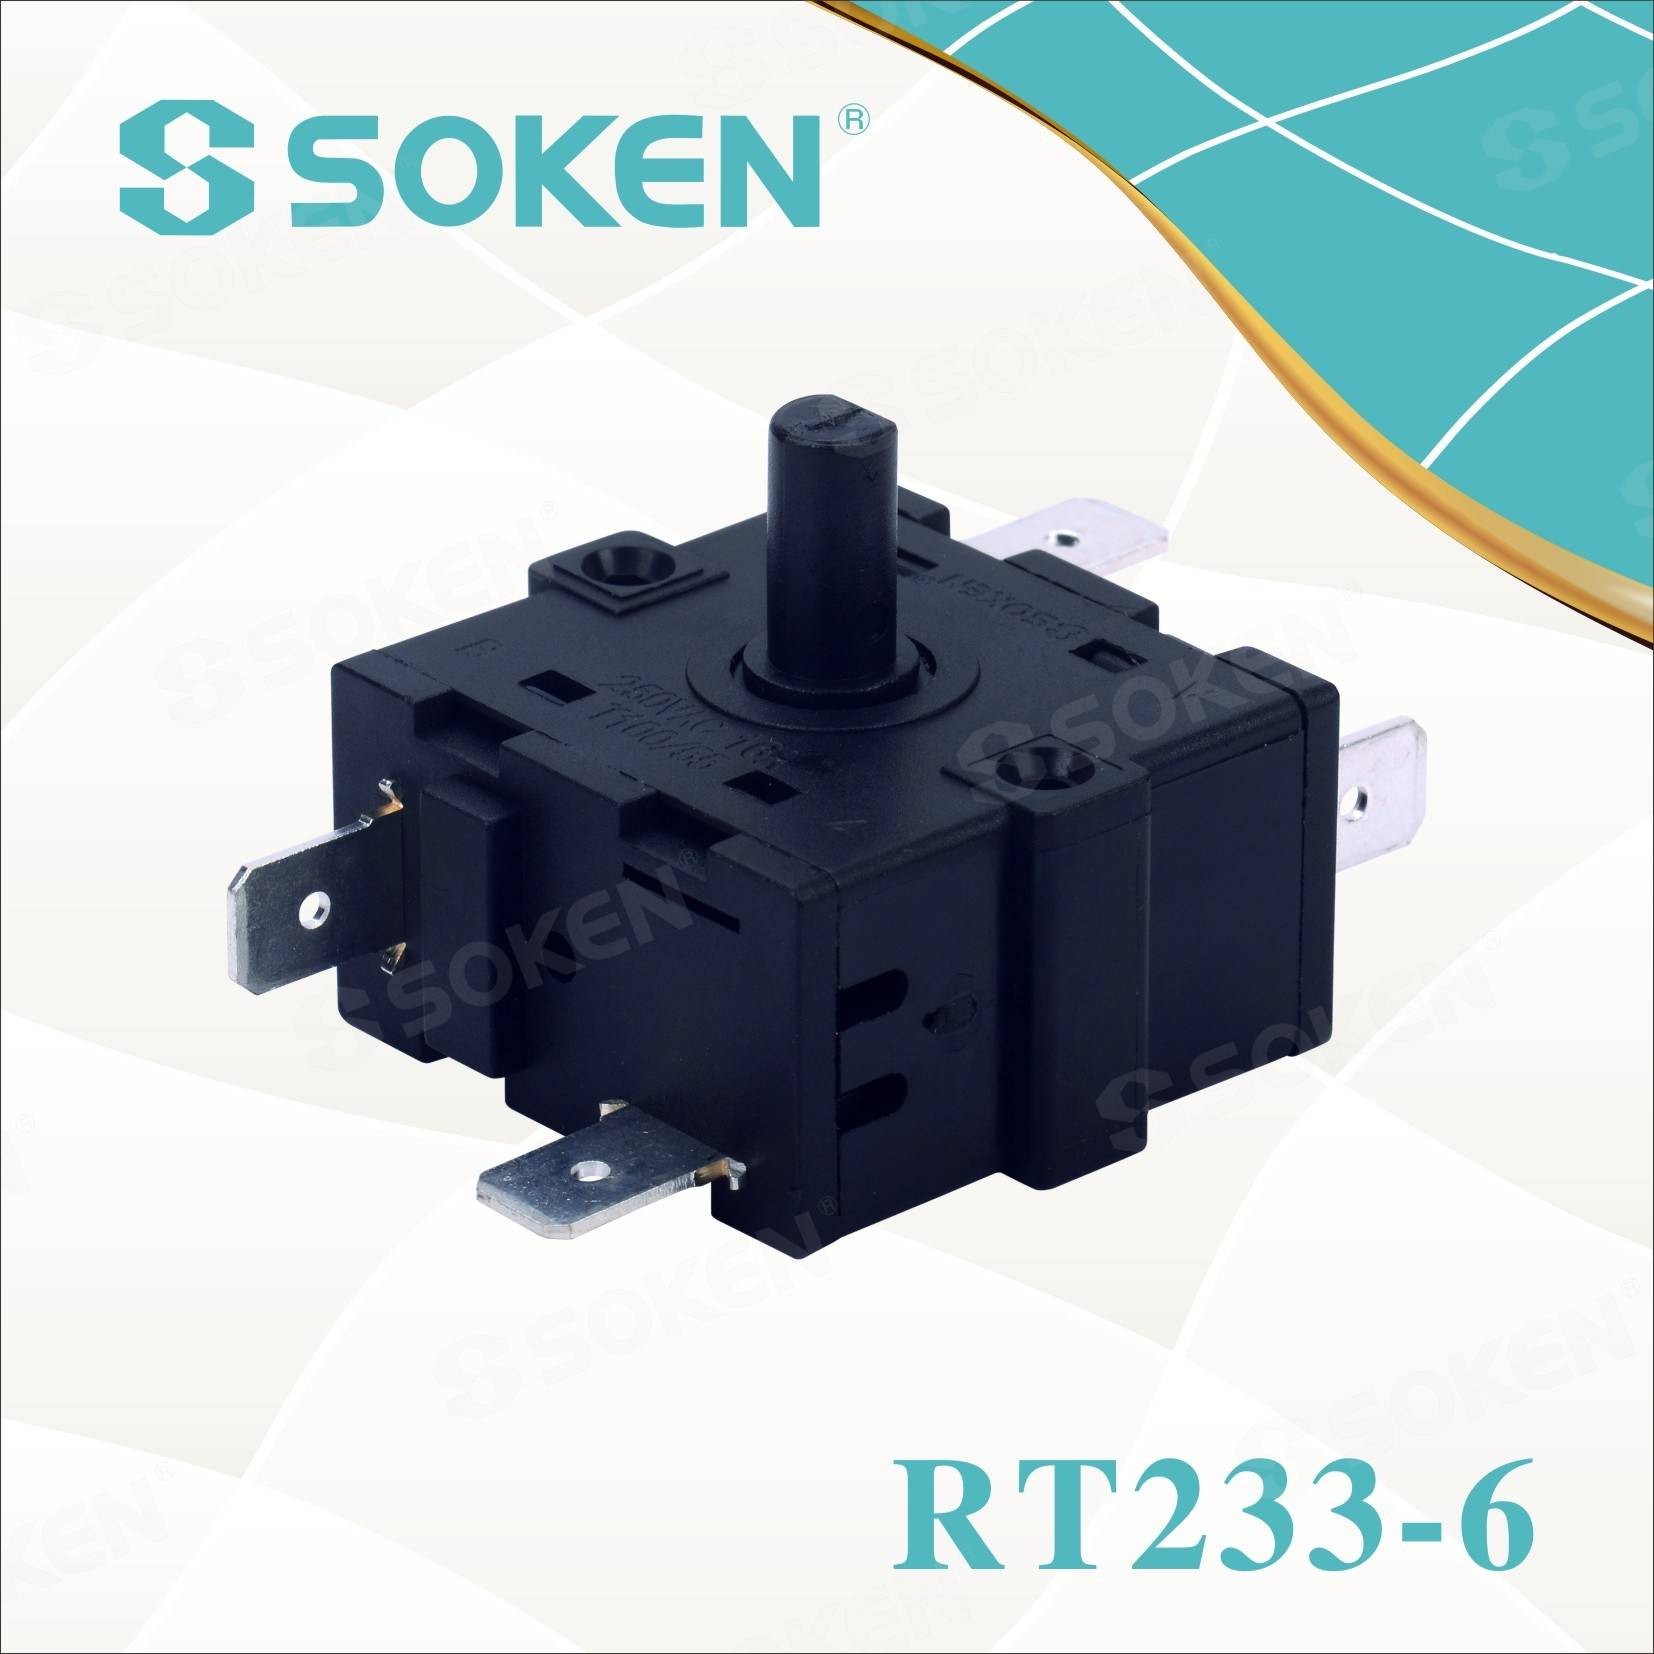 Best Price on Explosion Proof Light -